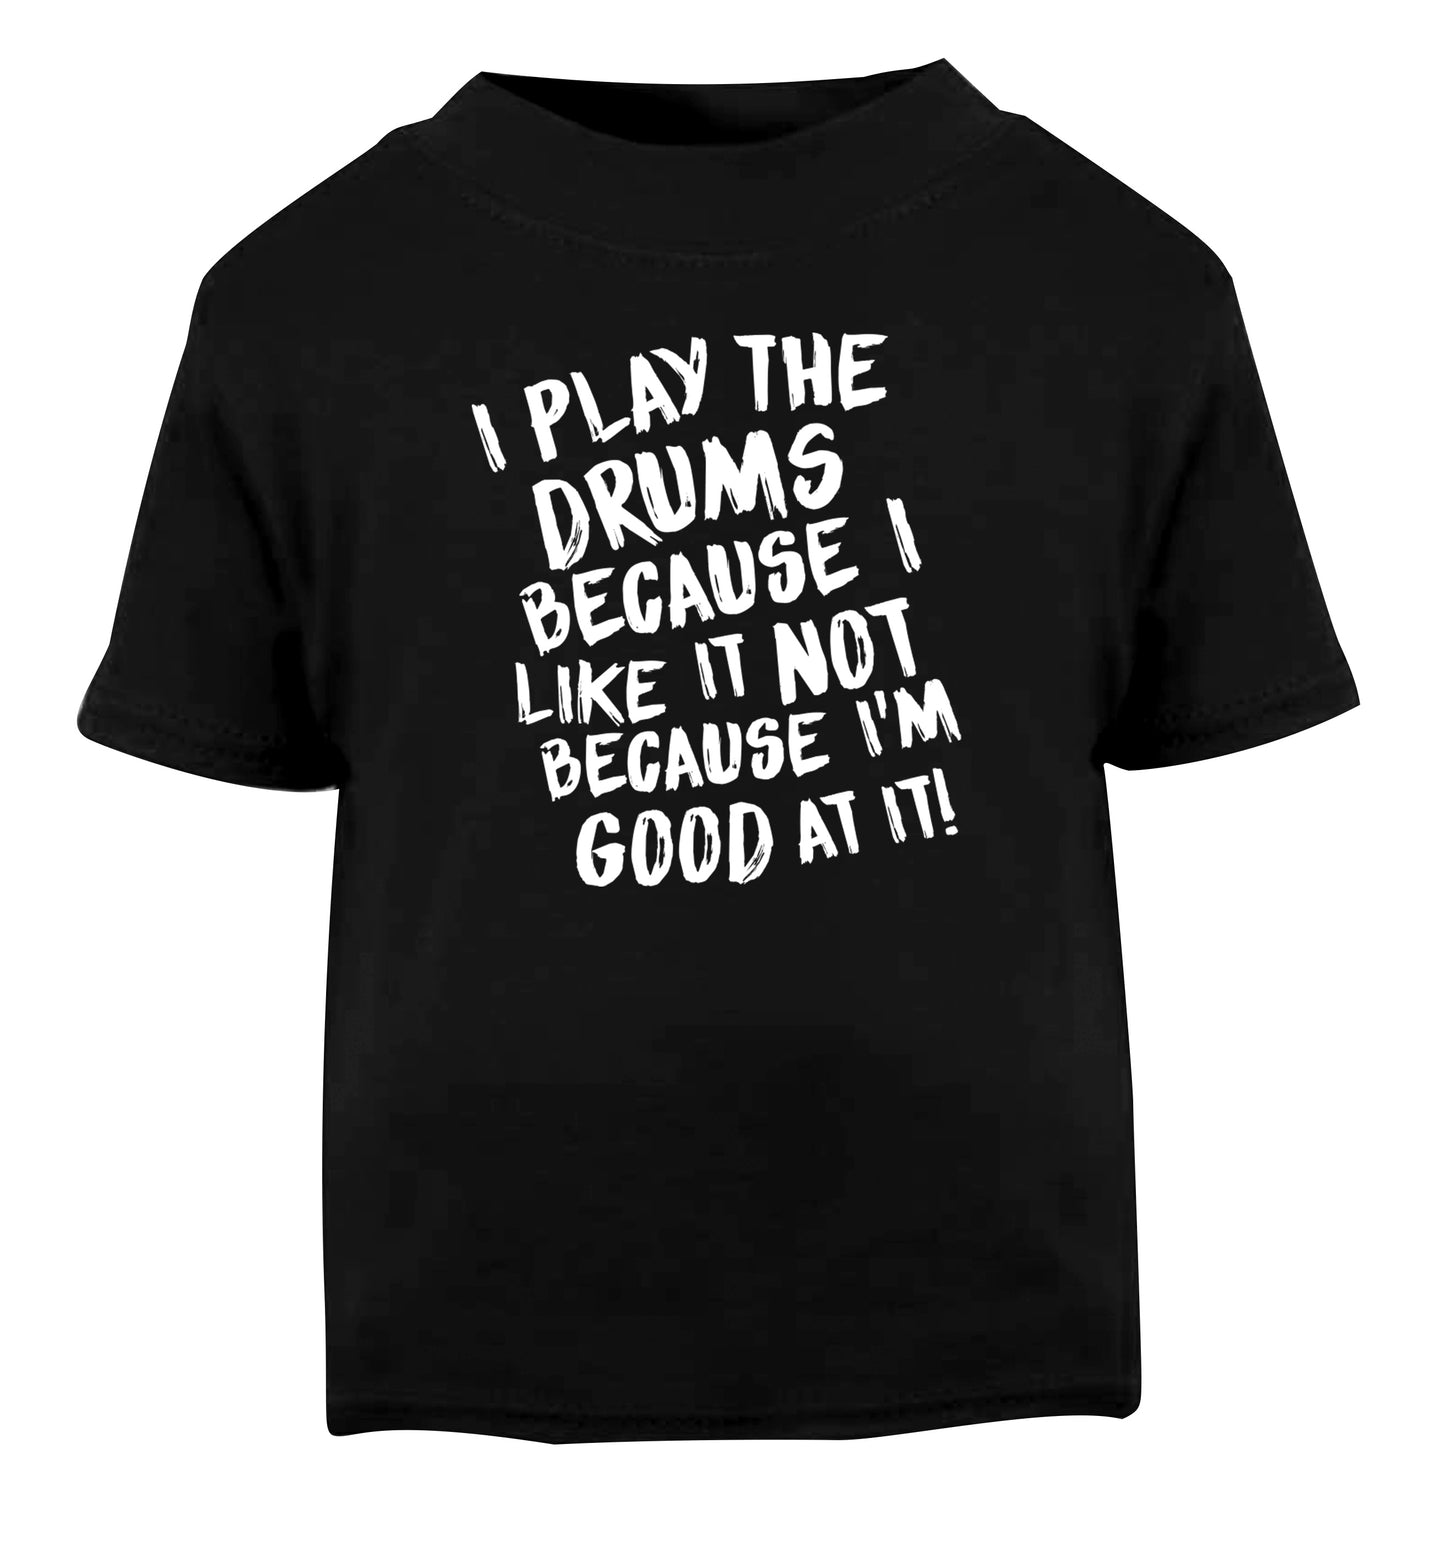 I play the drums because I like it not because I'm good at it Black Baby Toddler Tshirt 2 years